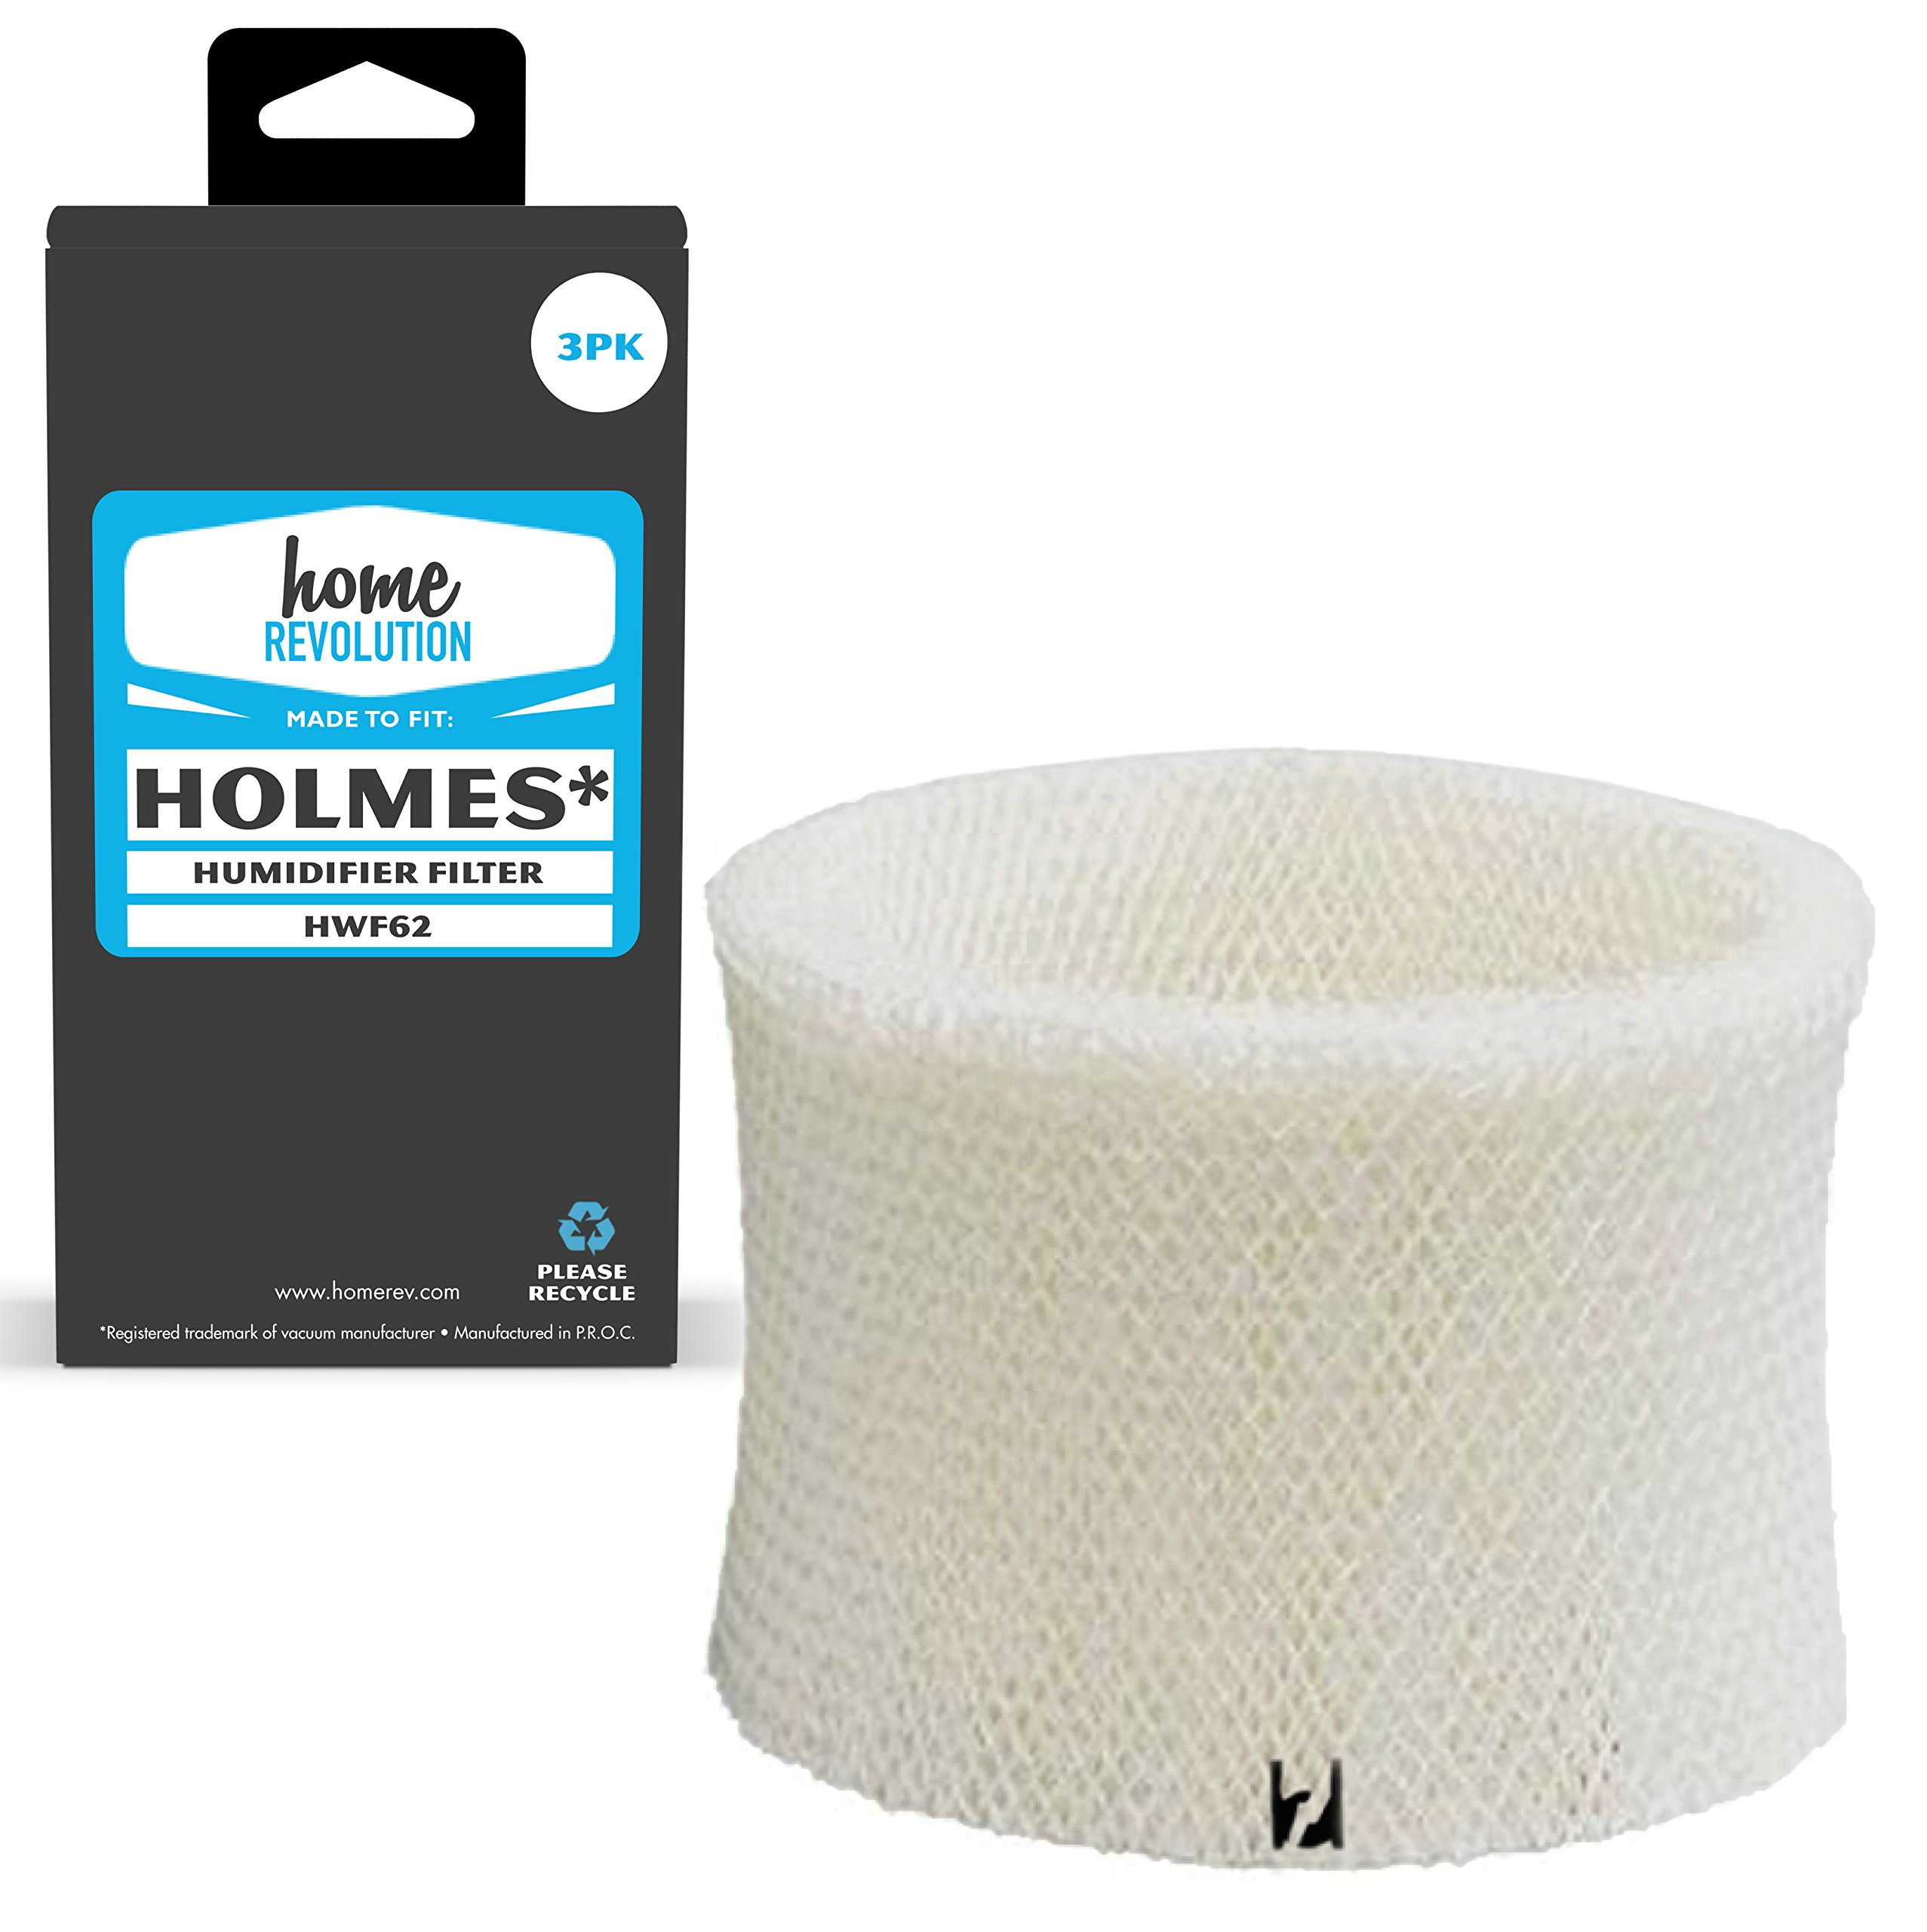 Home Revolution 3 Replacement Humidifier Filters, Fits Part HWF62 Filter A & Holmes, Honeywell, Sunbeam and Vicks Humidifiers by Home Revolution